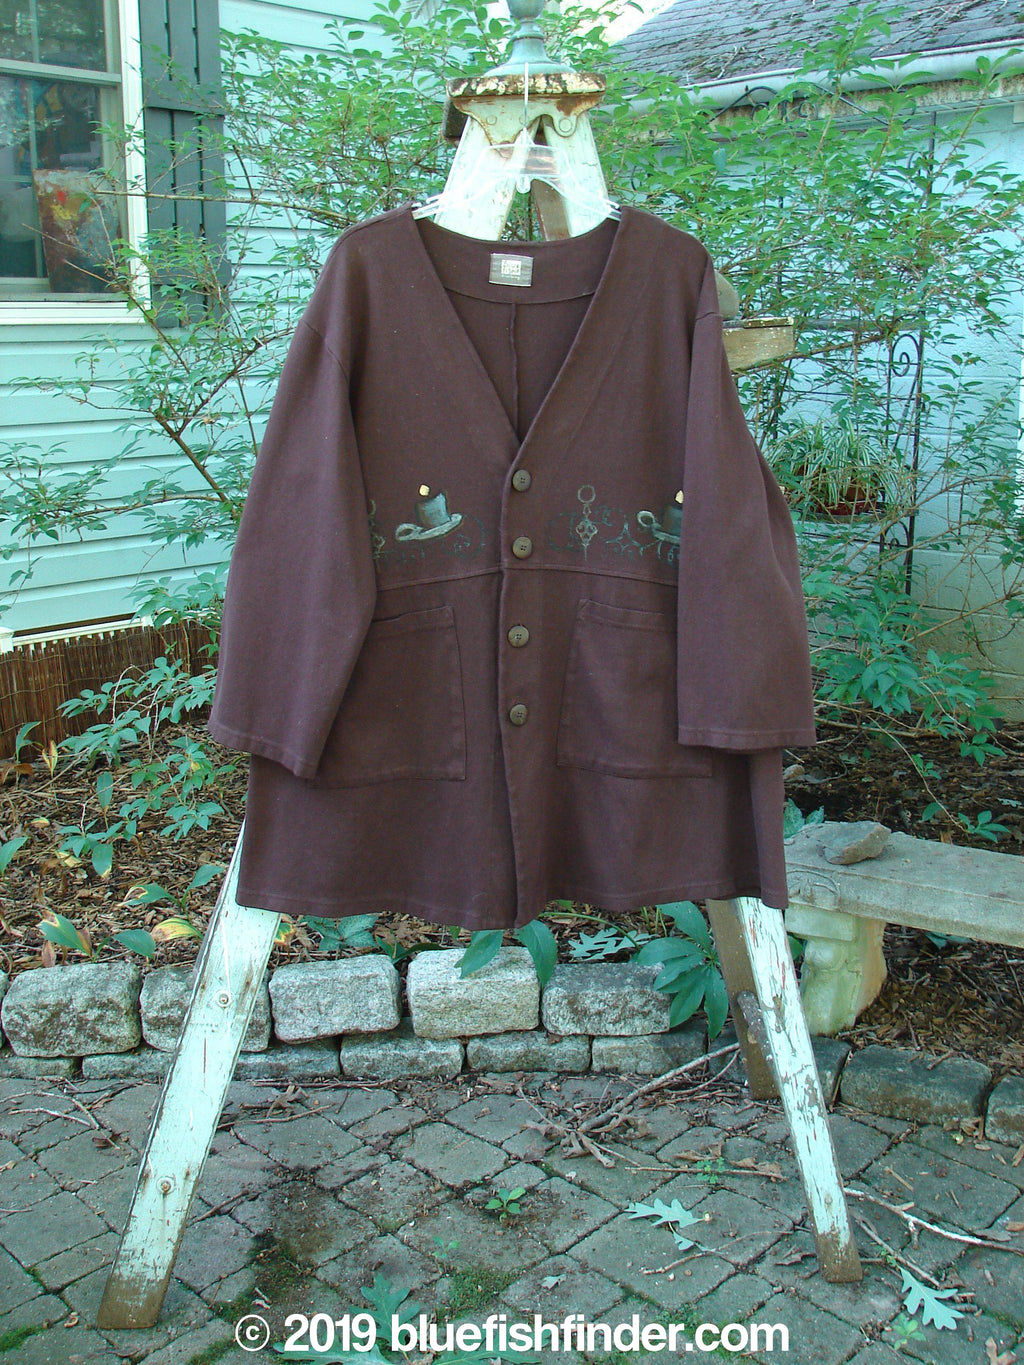 Vintage Blue Fish Clothing 1999 Steller Jacket Candle Deep Burgundy Size 1- Bluefishfinder.com